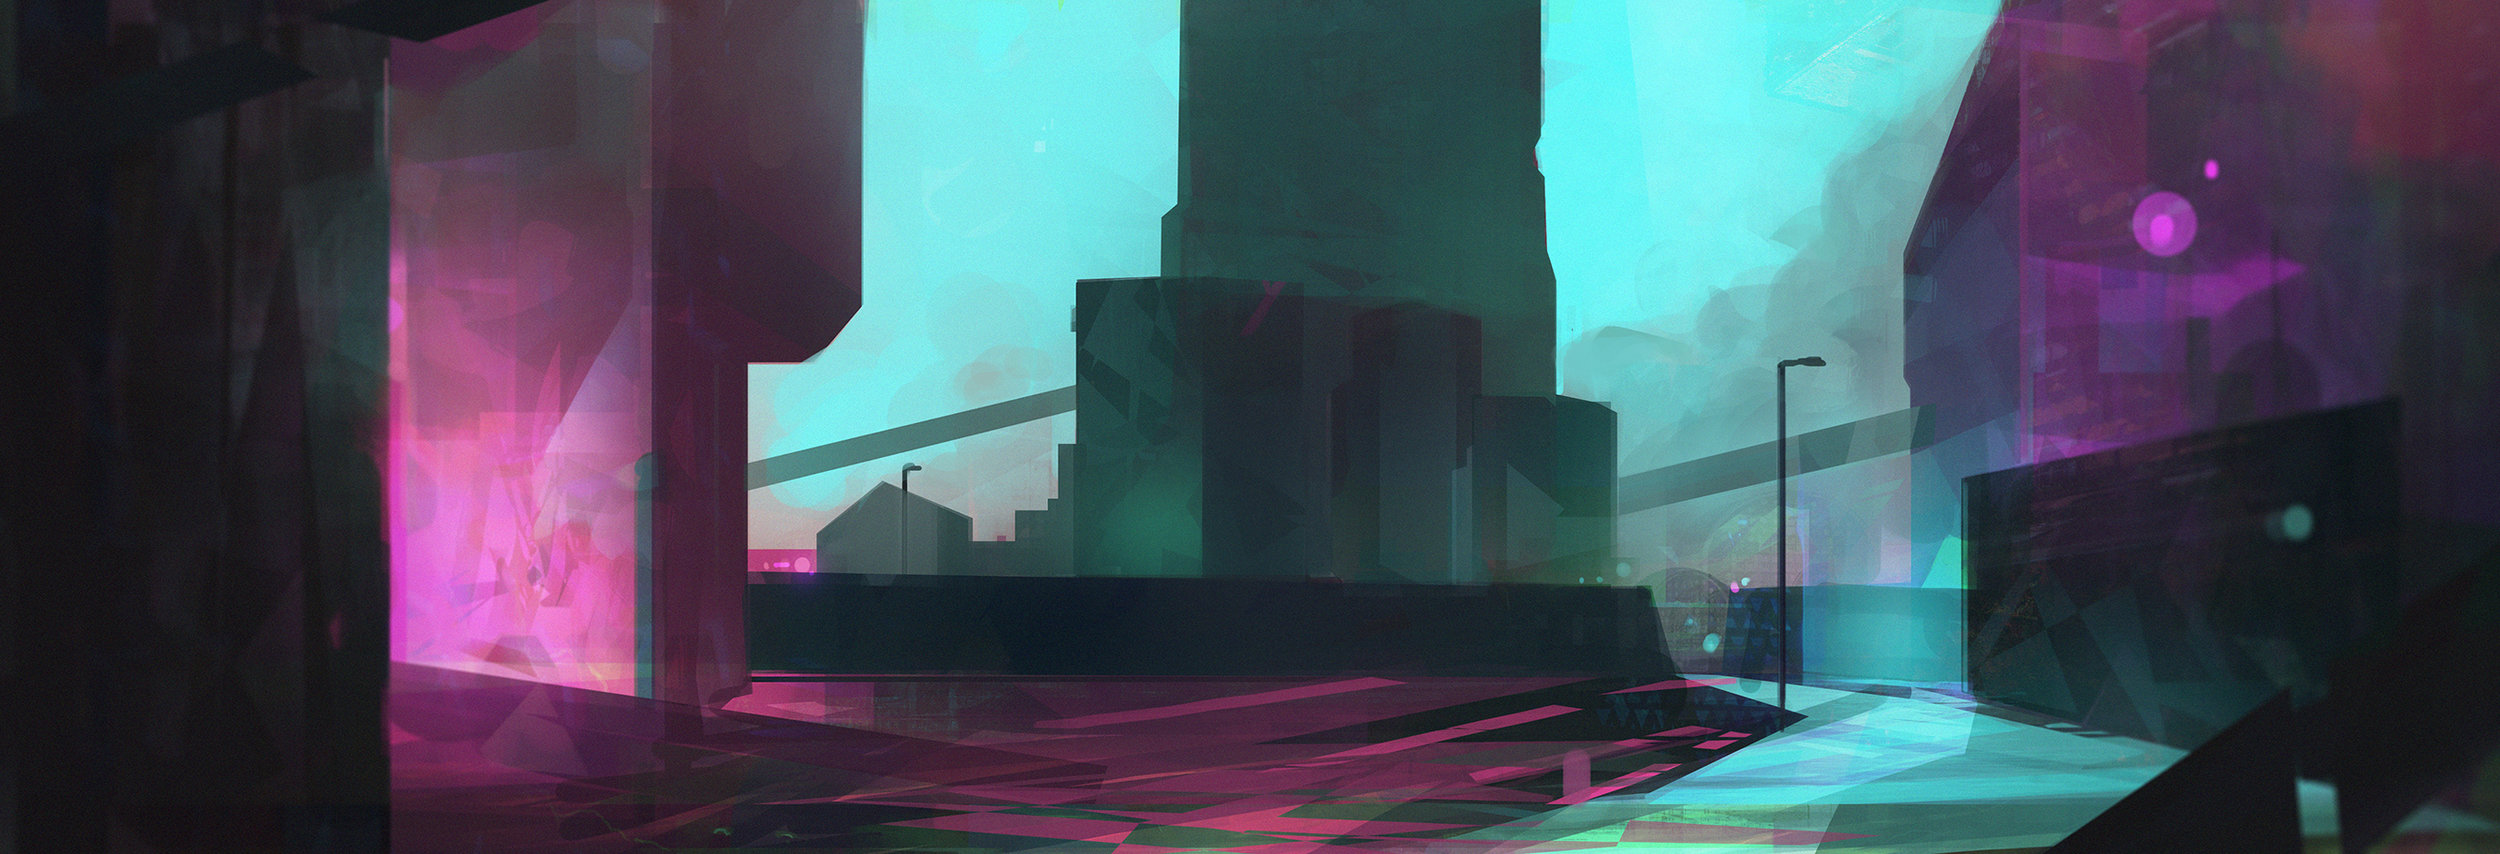 vis_dev_stage_01_sketches_12c.jpg